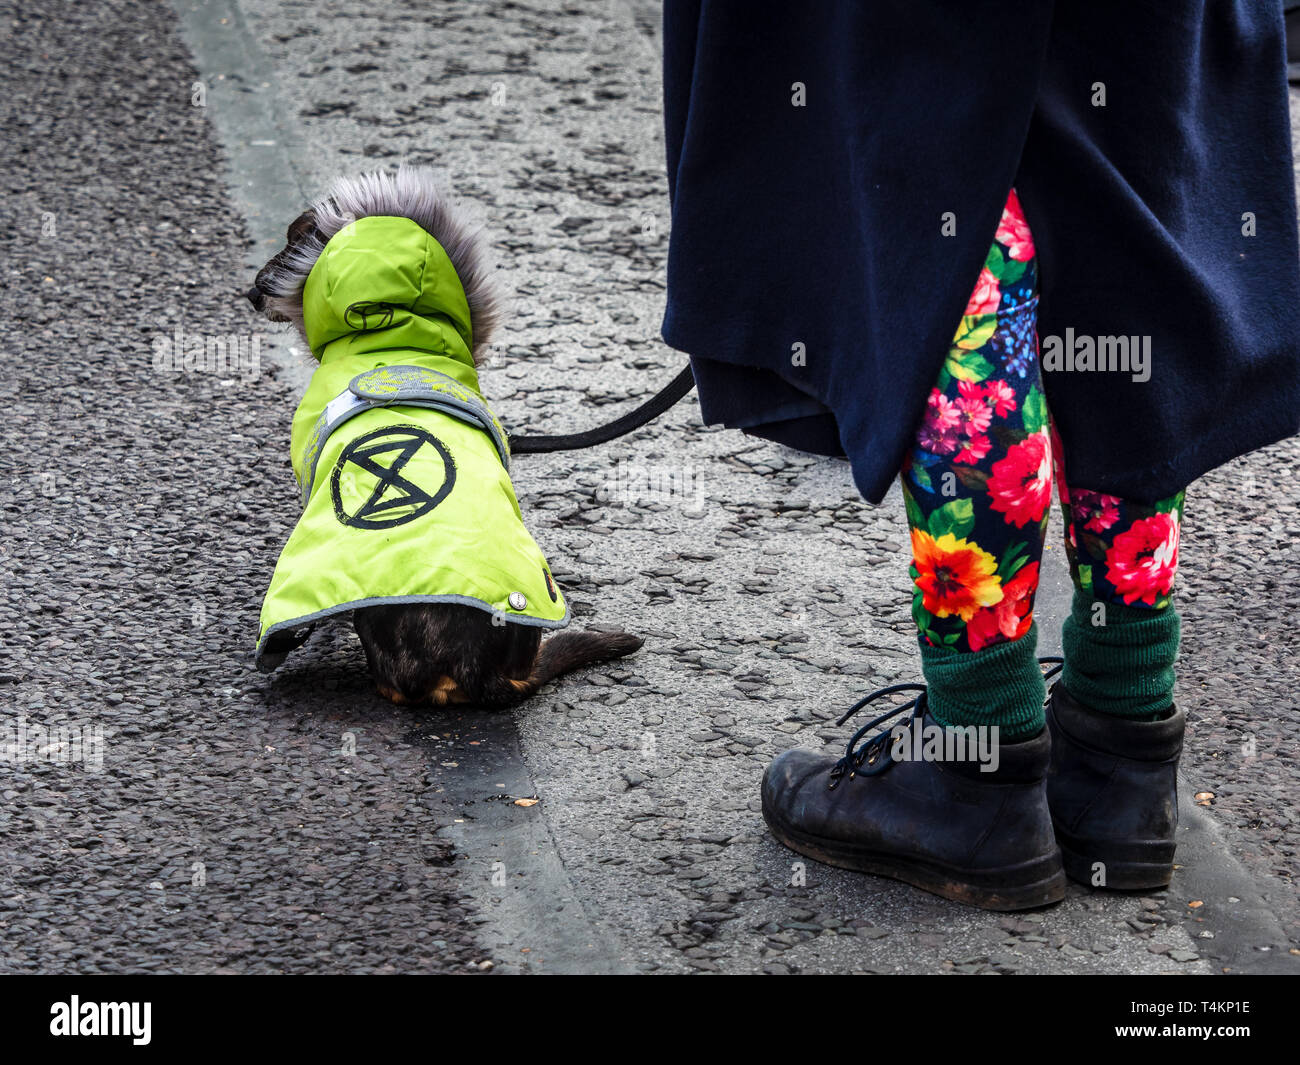 A dog joins in the Extinction Rebellion non violent protests on Waterloo Bridge. - Stock Image